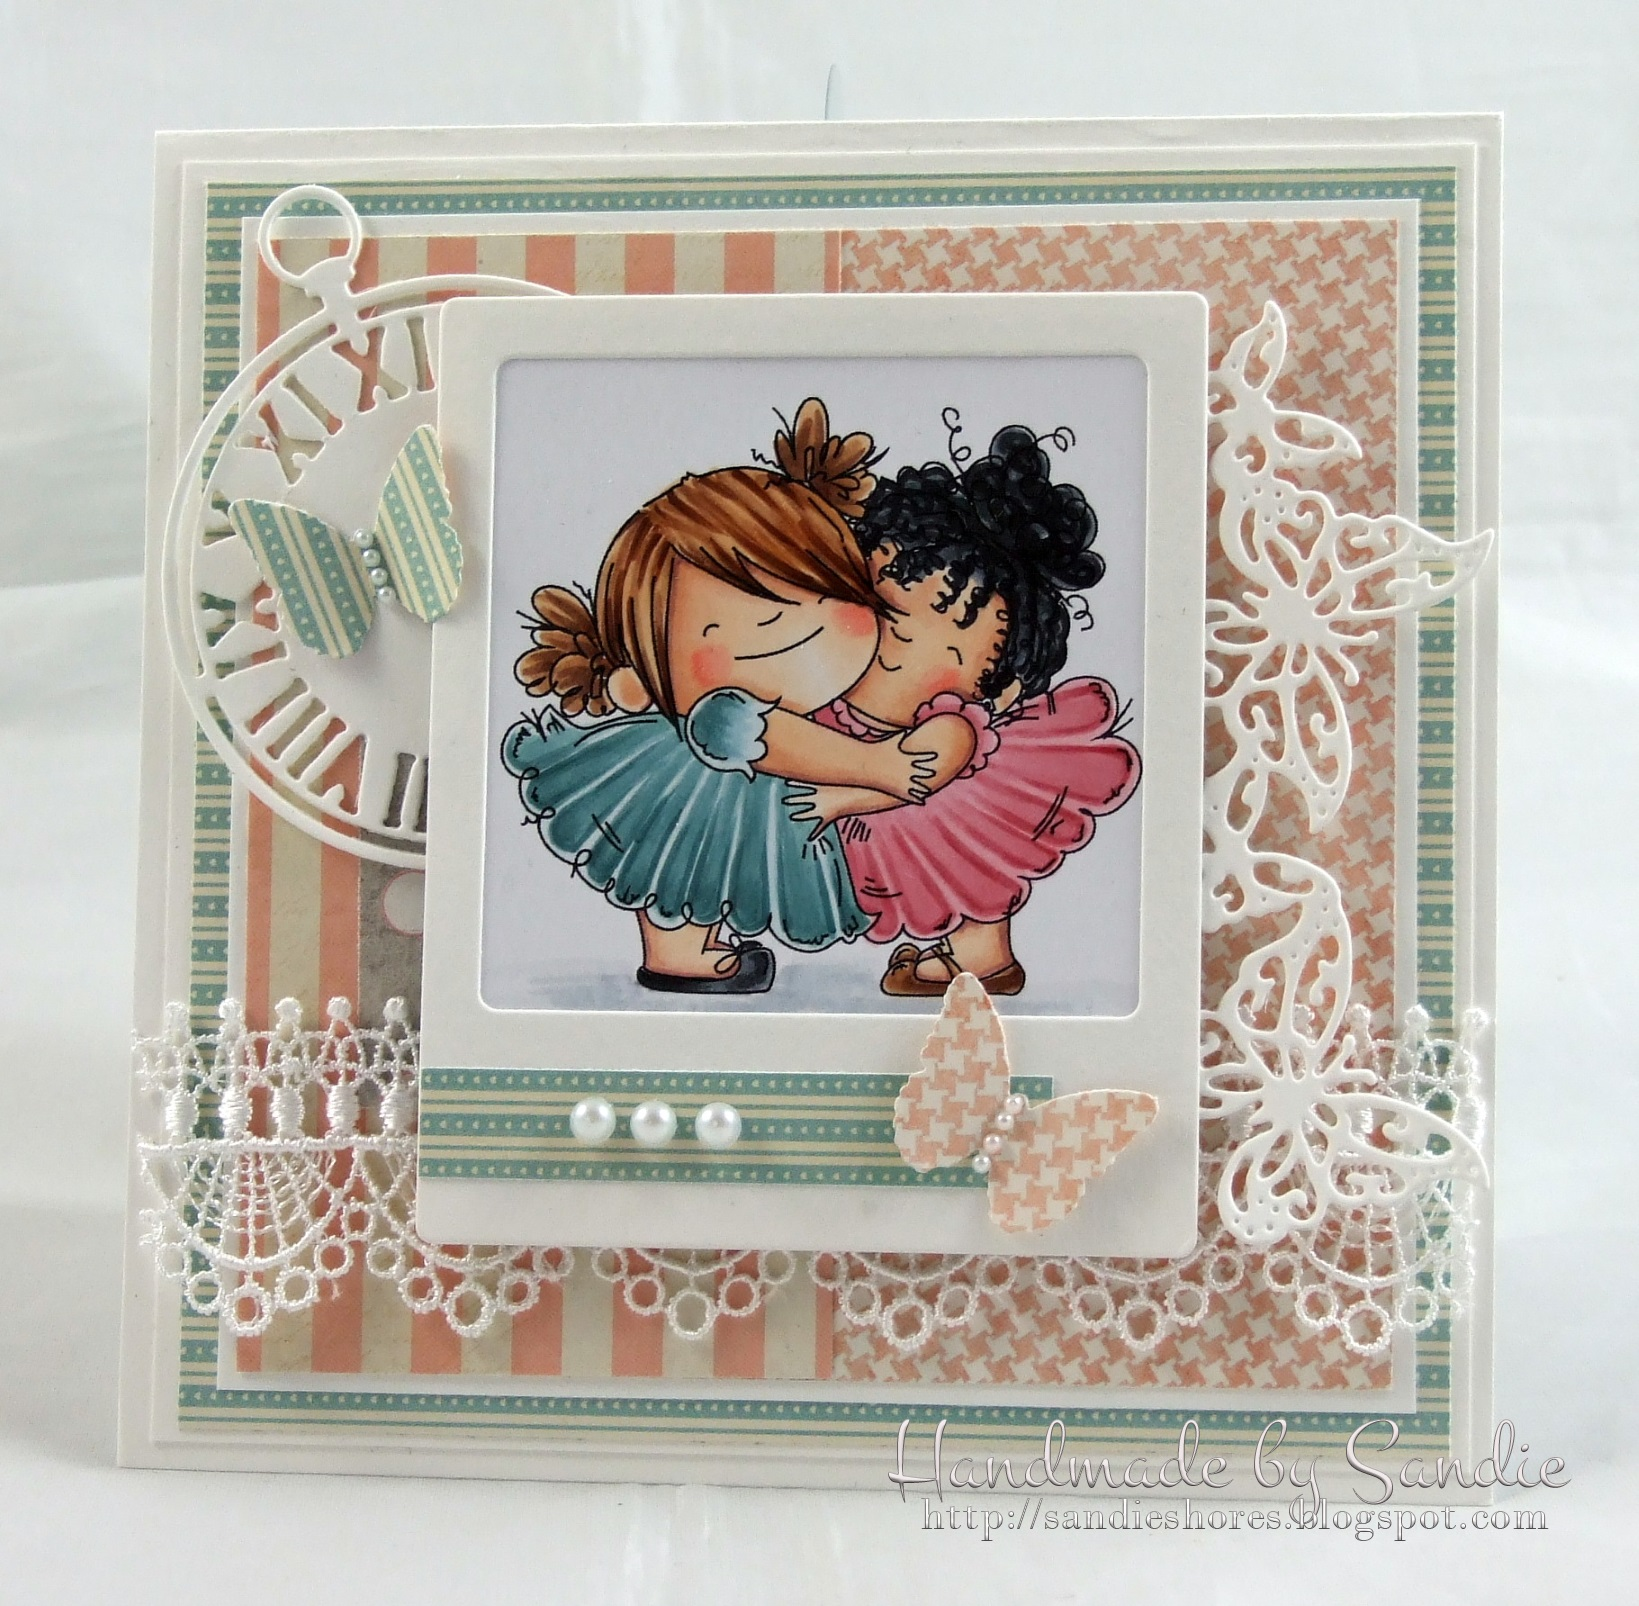 Stamping Bella JANUARY 2017 rubber stamp release- HUGGY SQUIDGIES card by Sandie Dunne